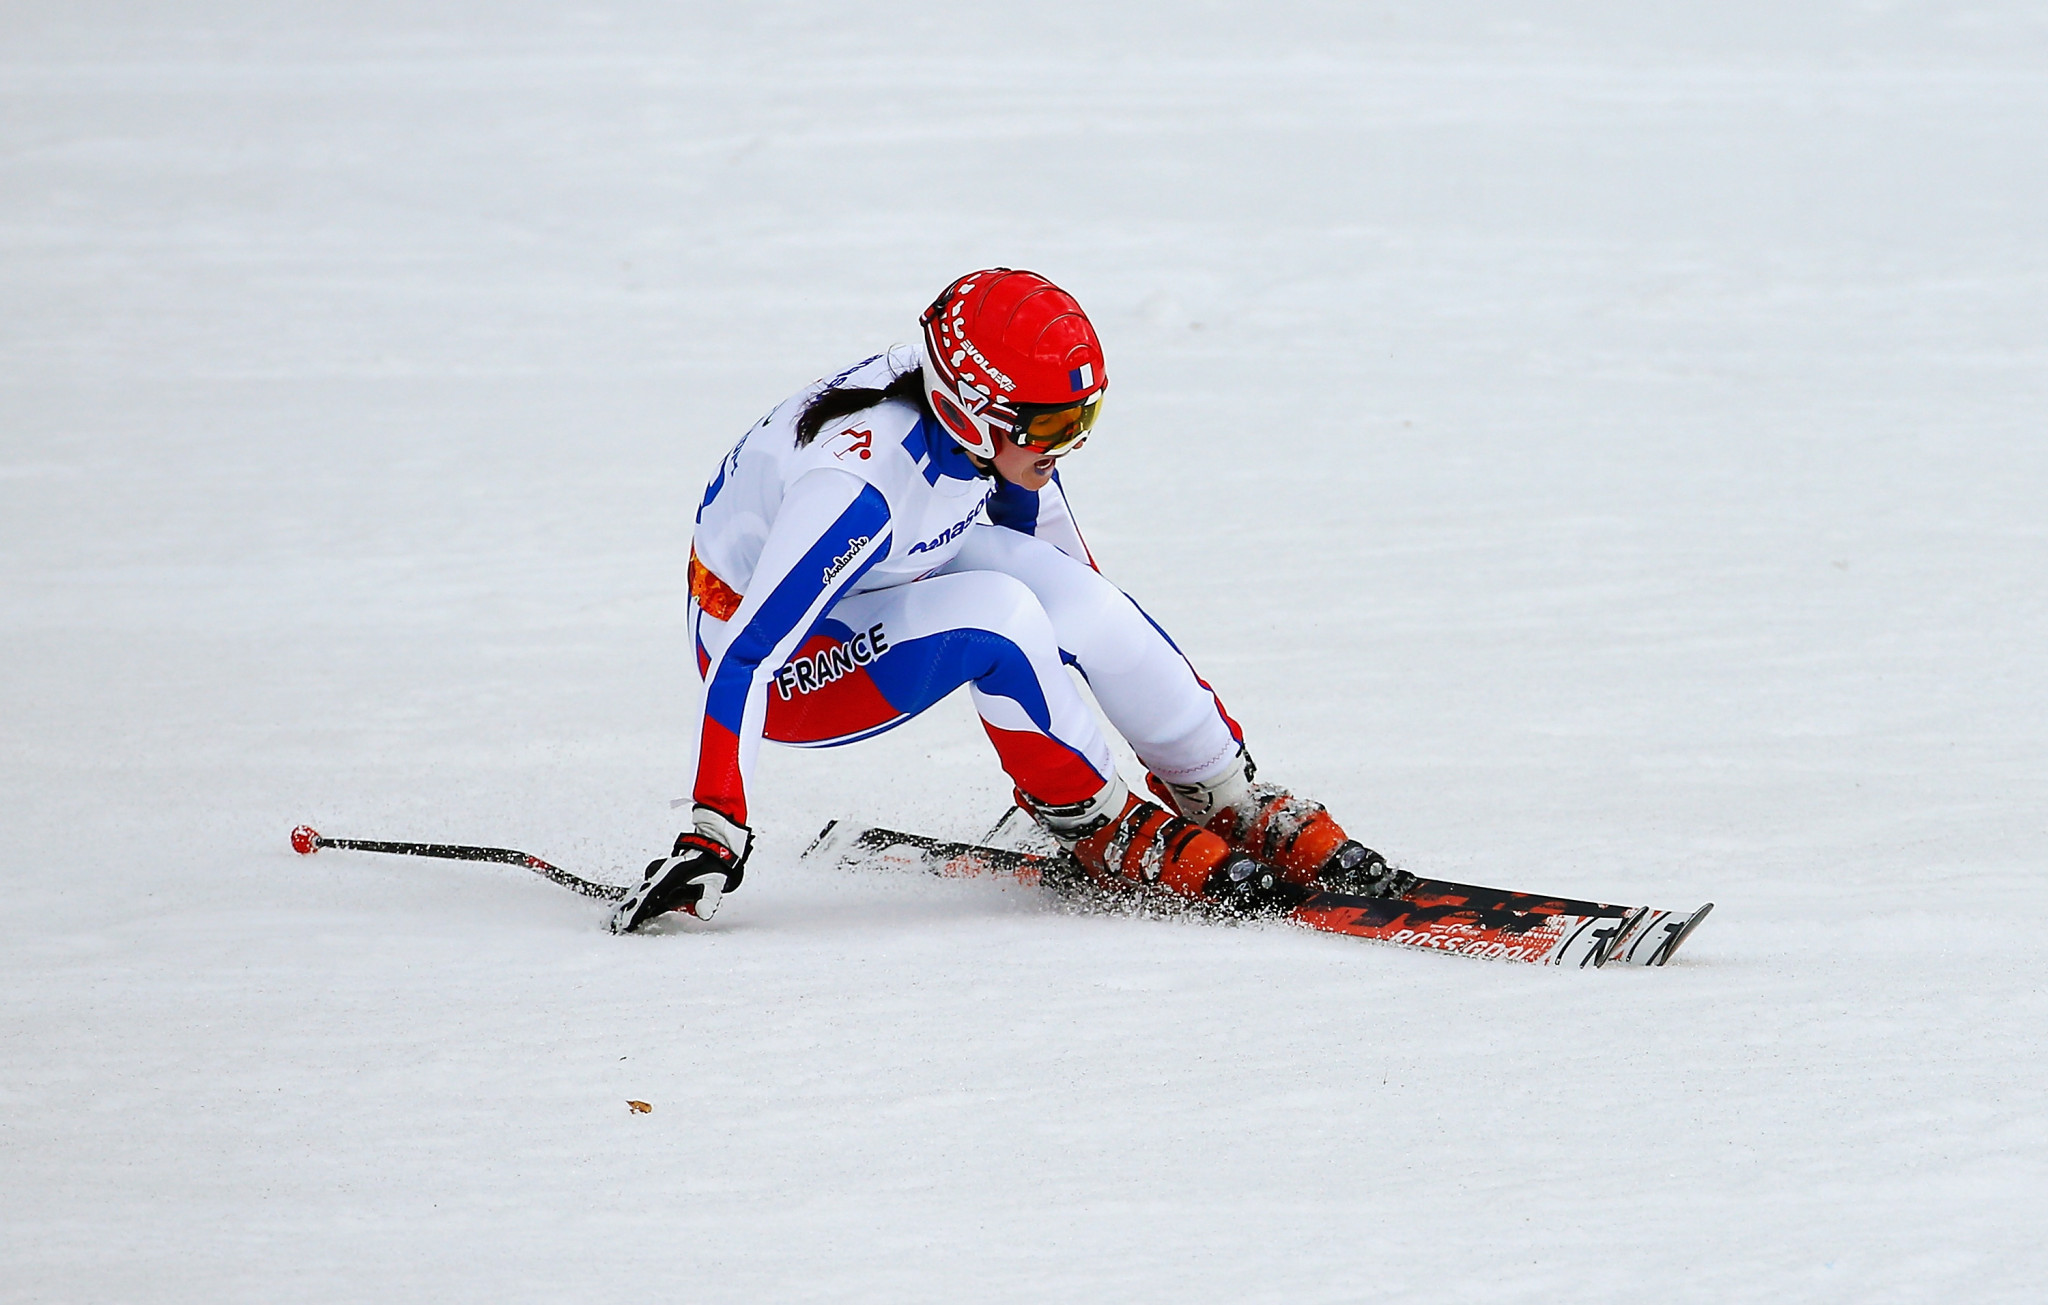 Bochet continues unbeaten run on final day of World Para Alpine Skiing World Cup in Zagreb